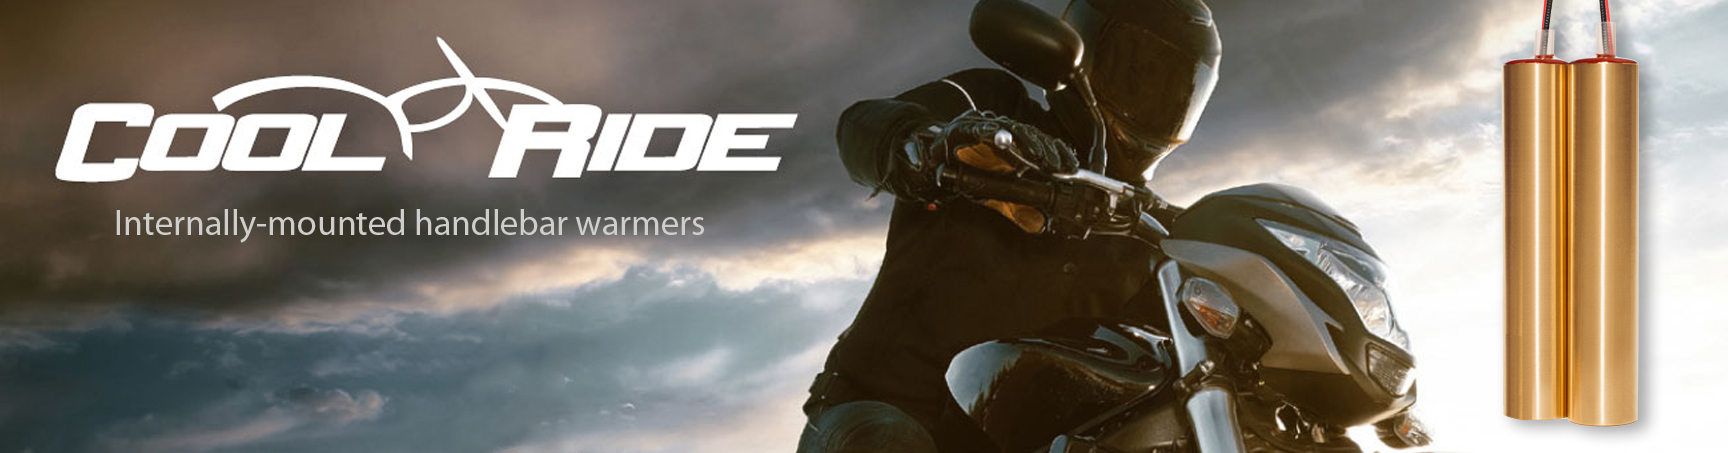 CoolRide About Us